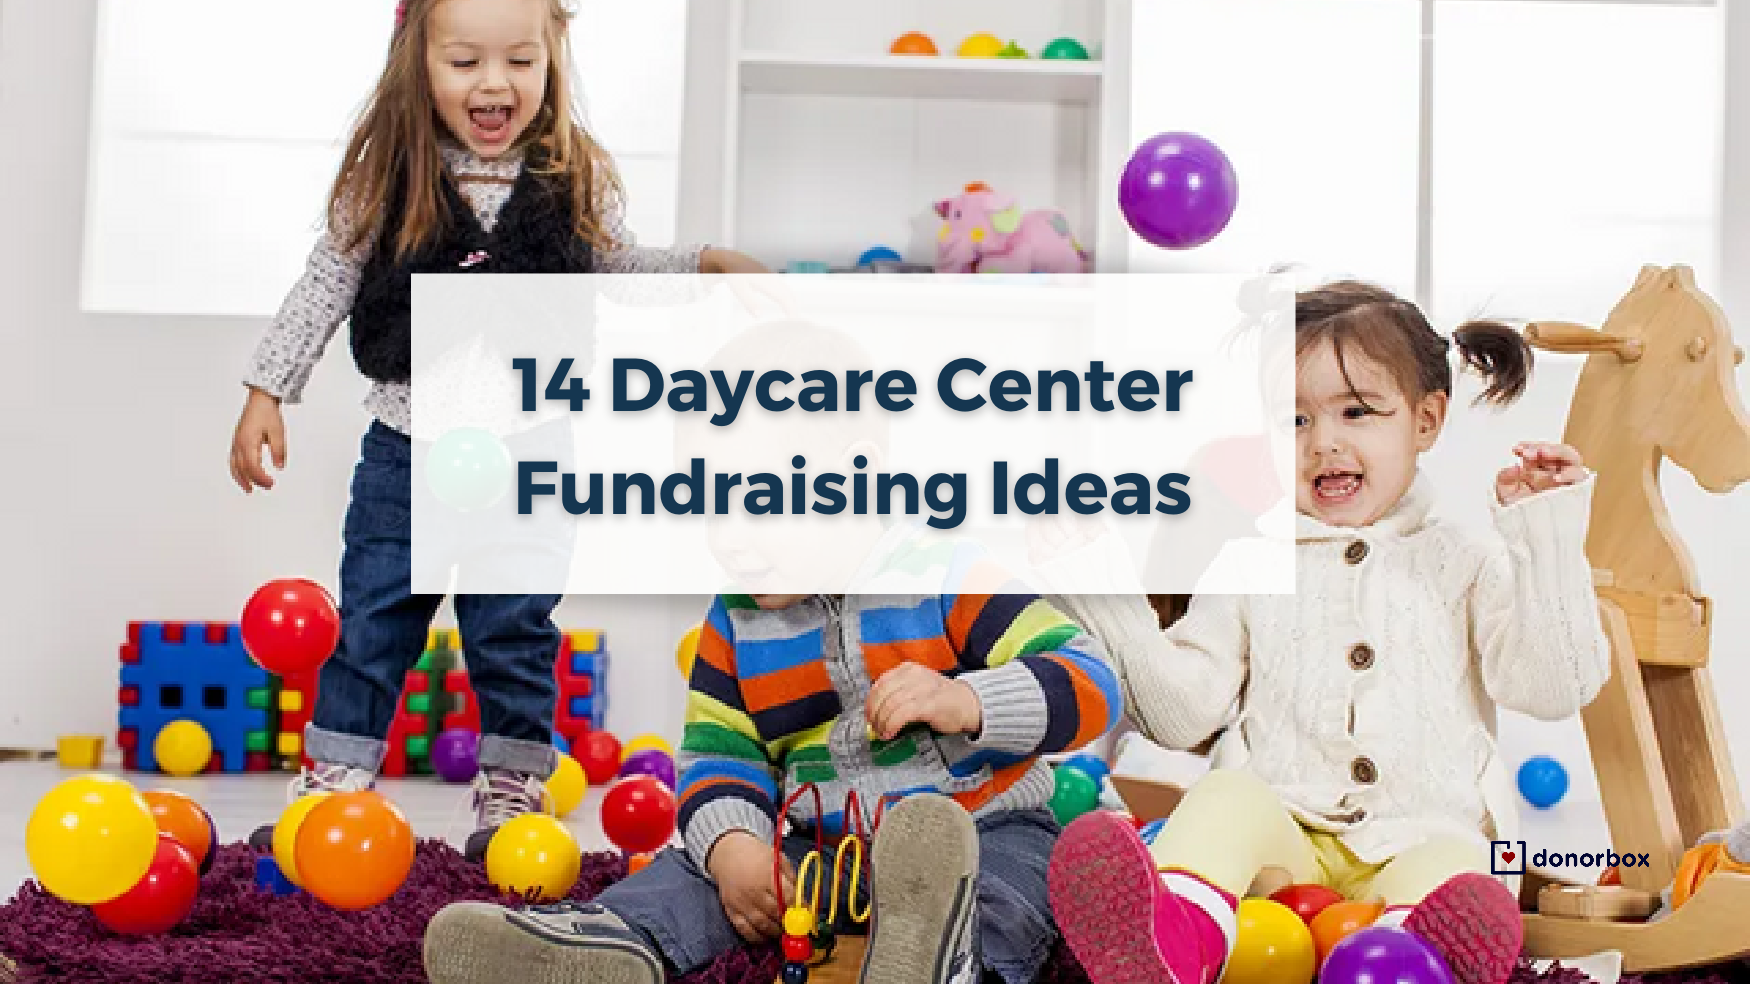 daycare center fundraising ideas